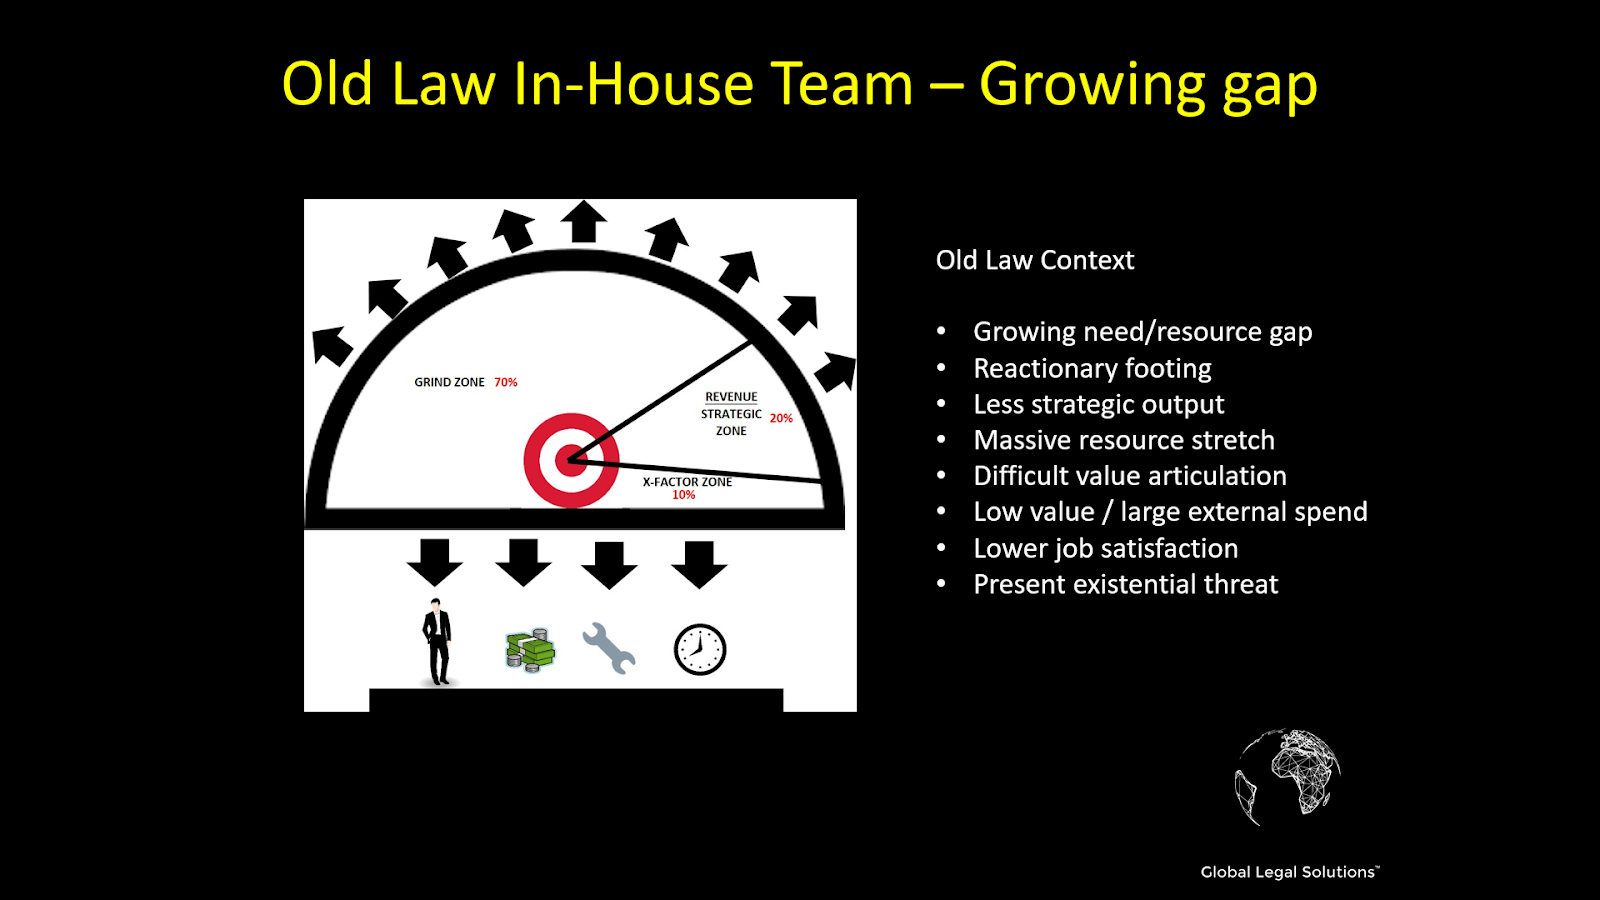 Old law, the current state of most in-house legal teams